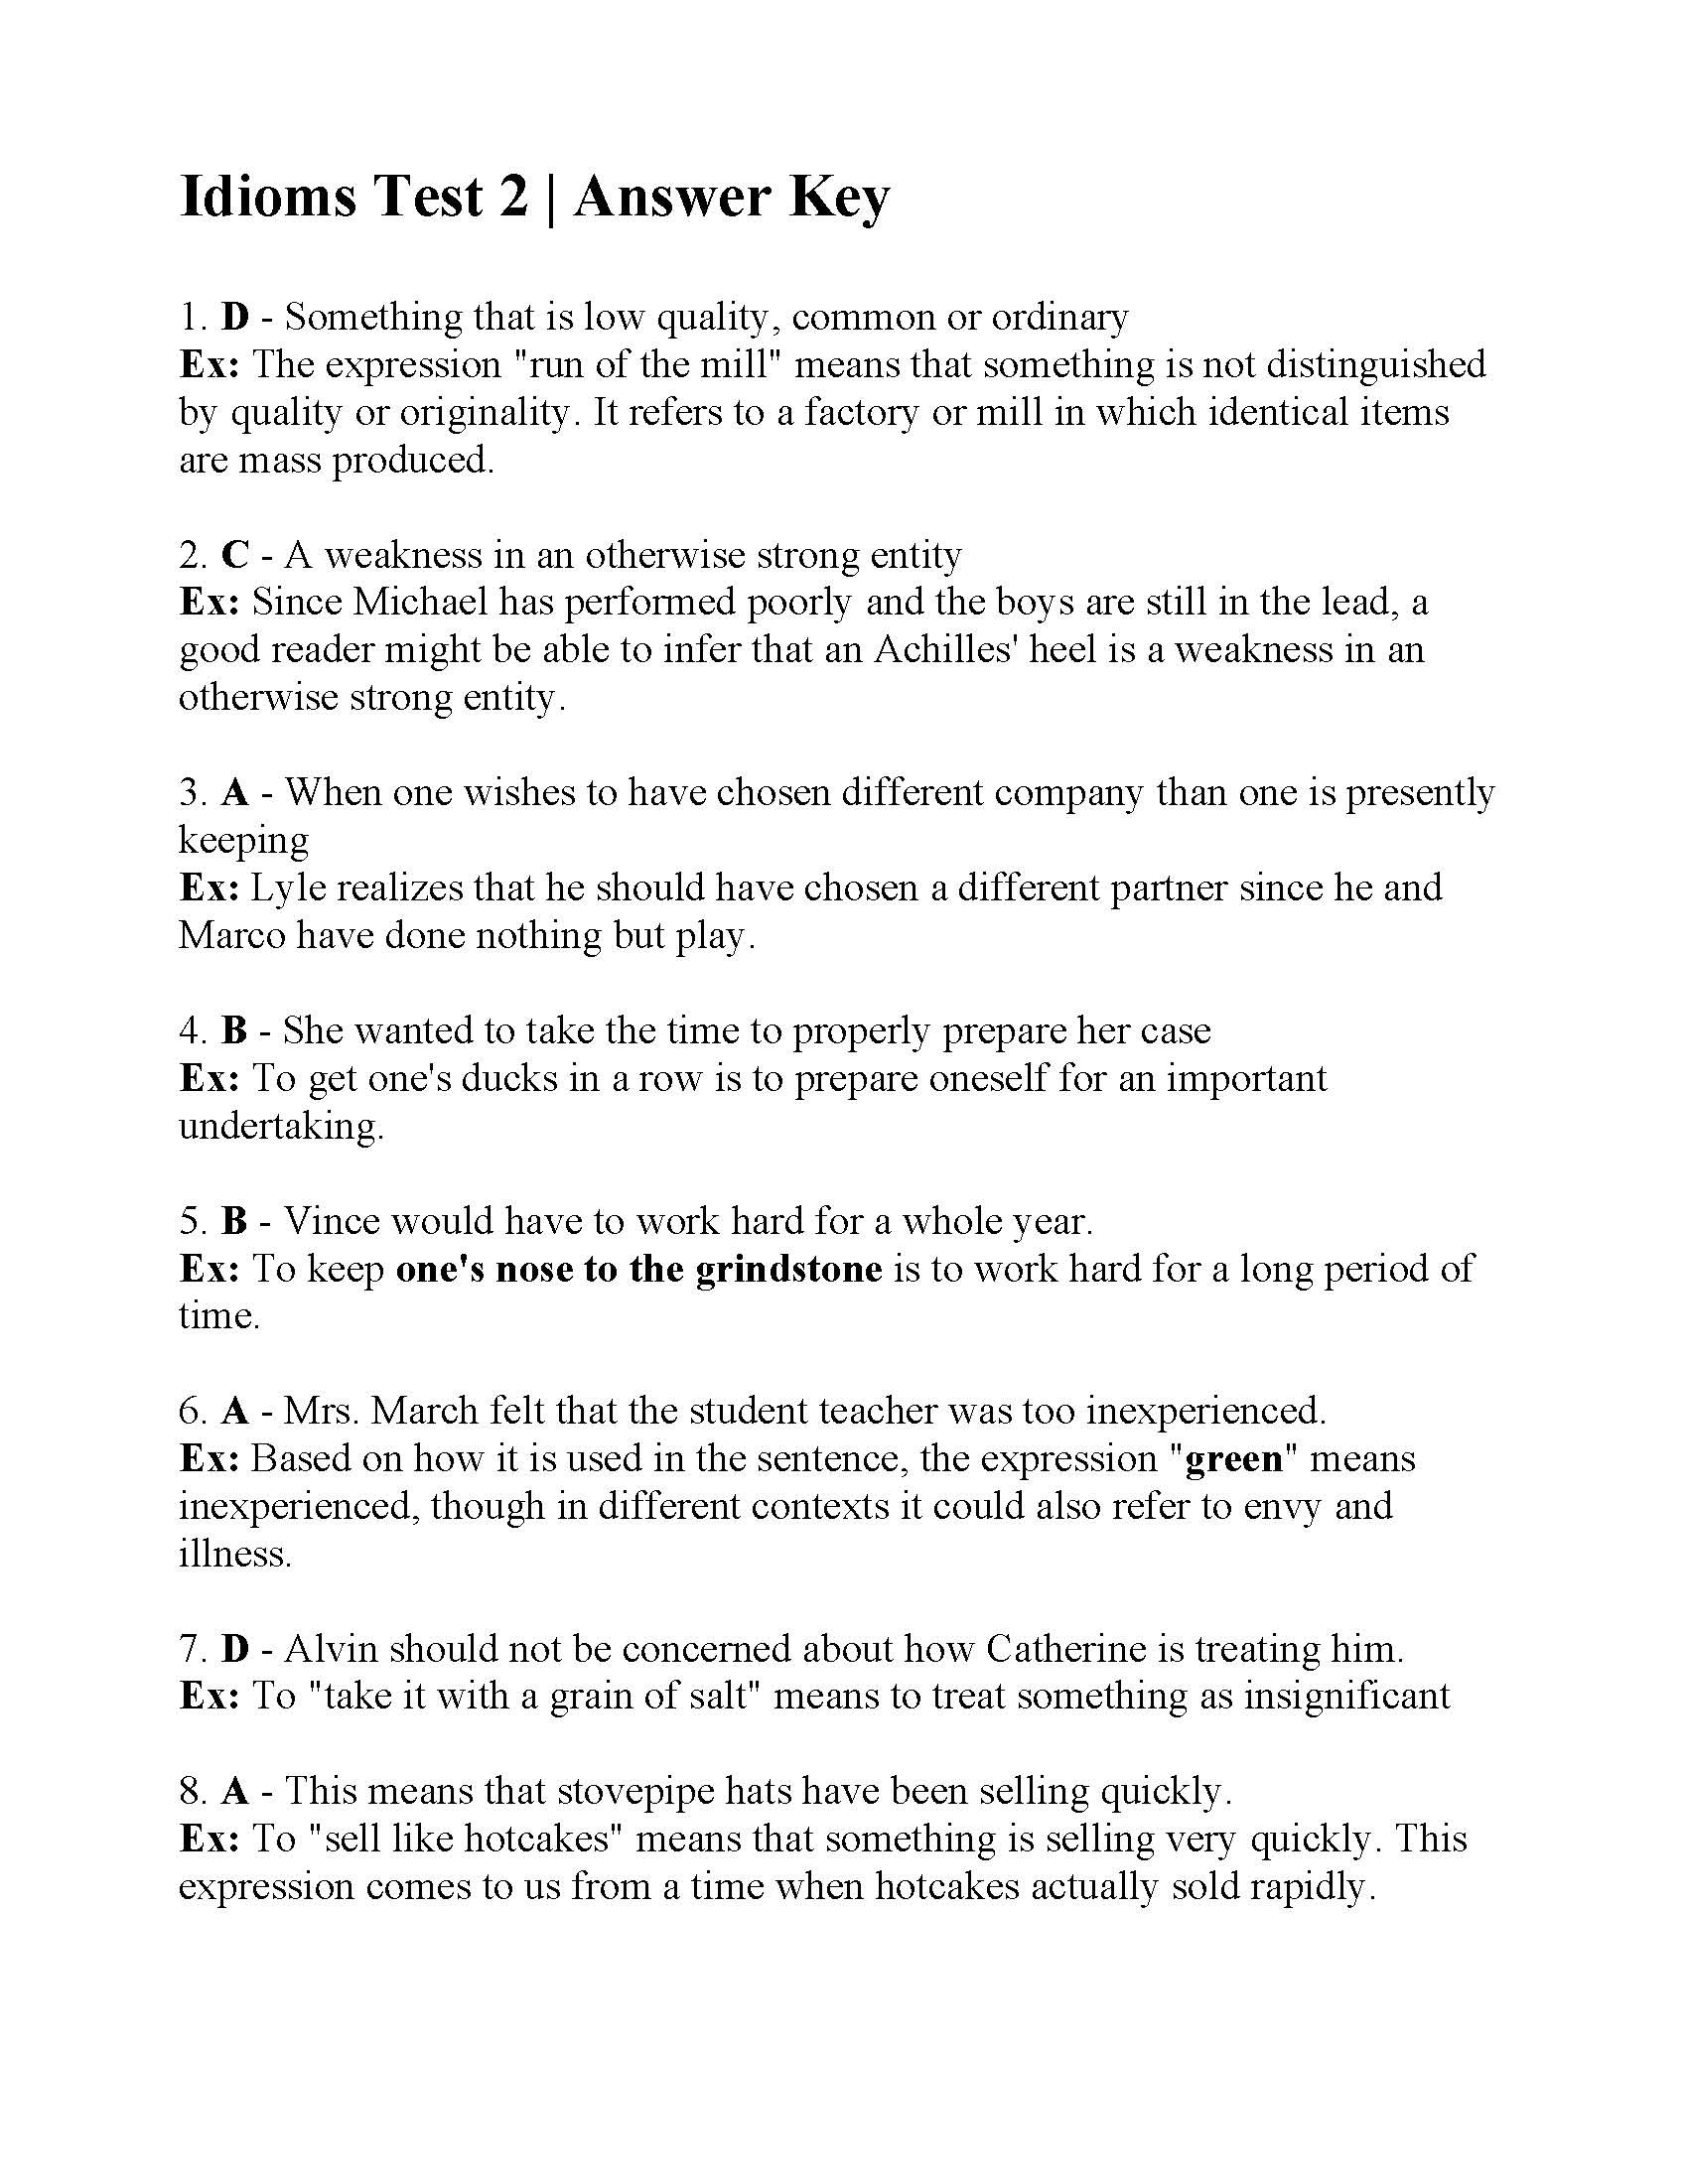 Idiom Worksheets for 2nd Grade Division Questions Year 6 Time Table Worksheets for 2nd